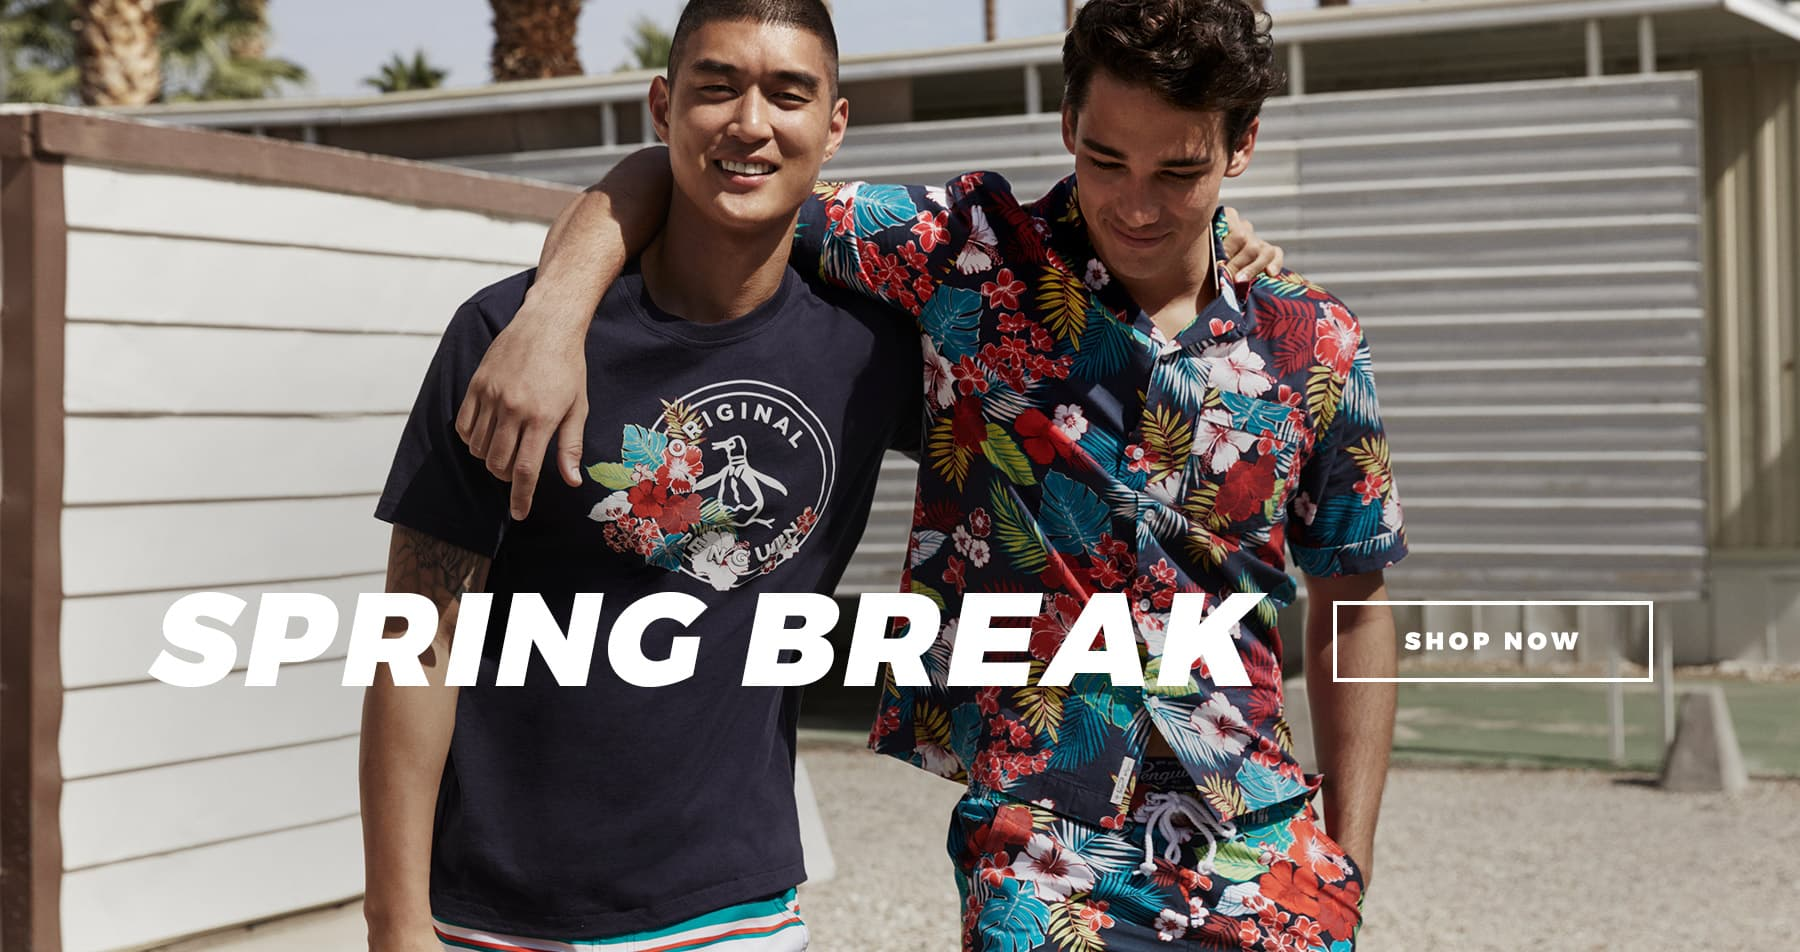 Spring Break - Shop Now